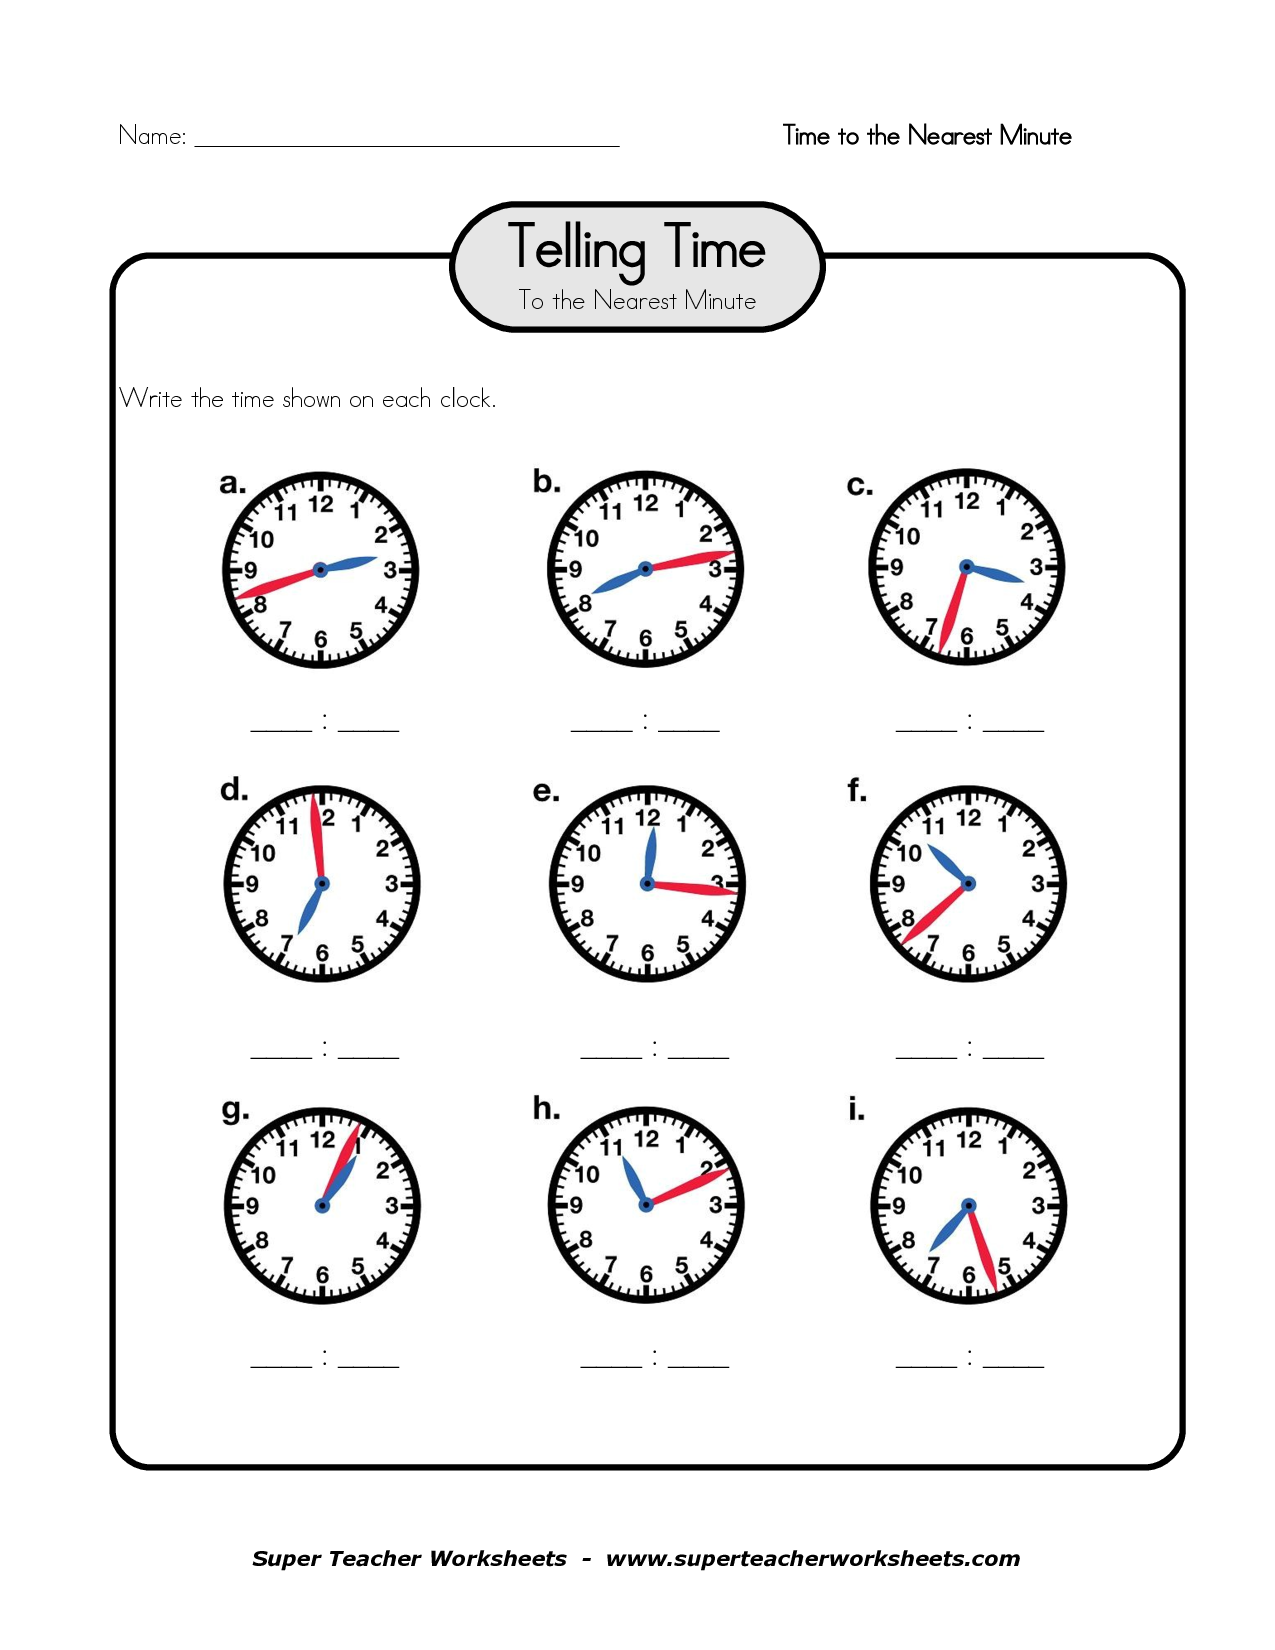 Clock Telling Time Worksheet Printable | Printable ...